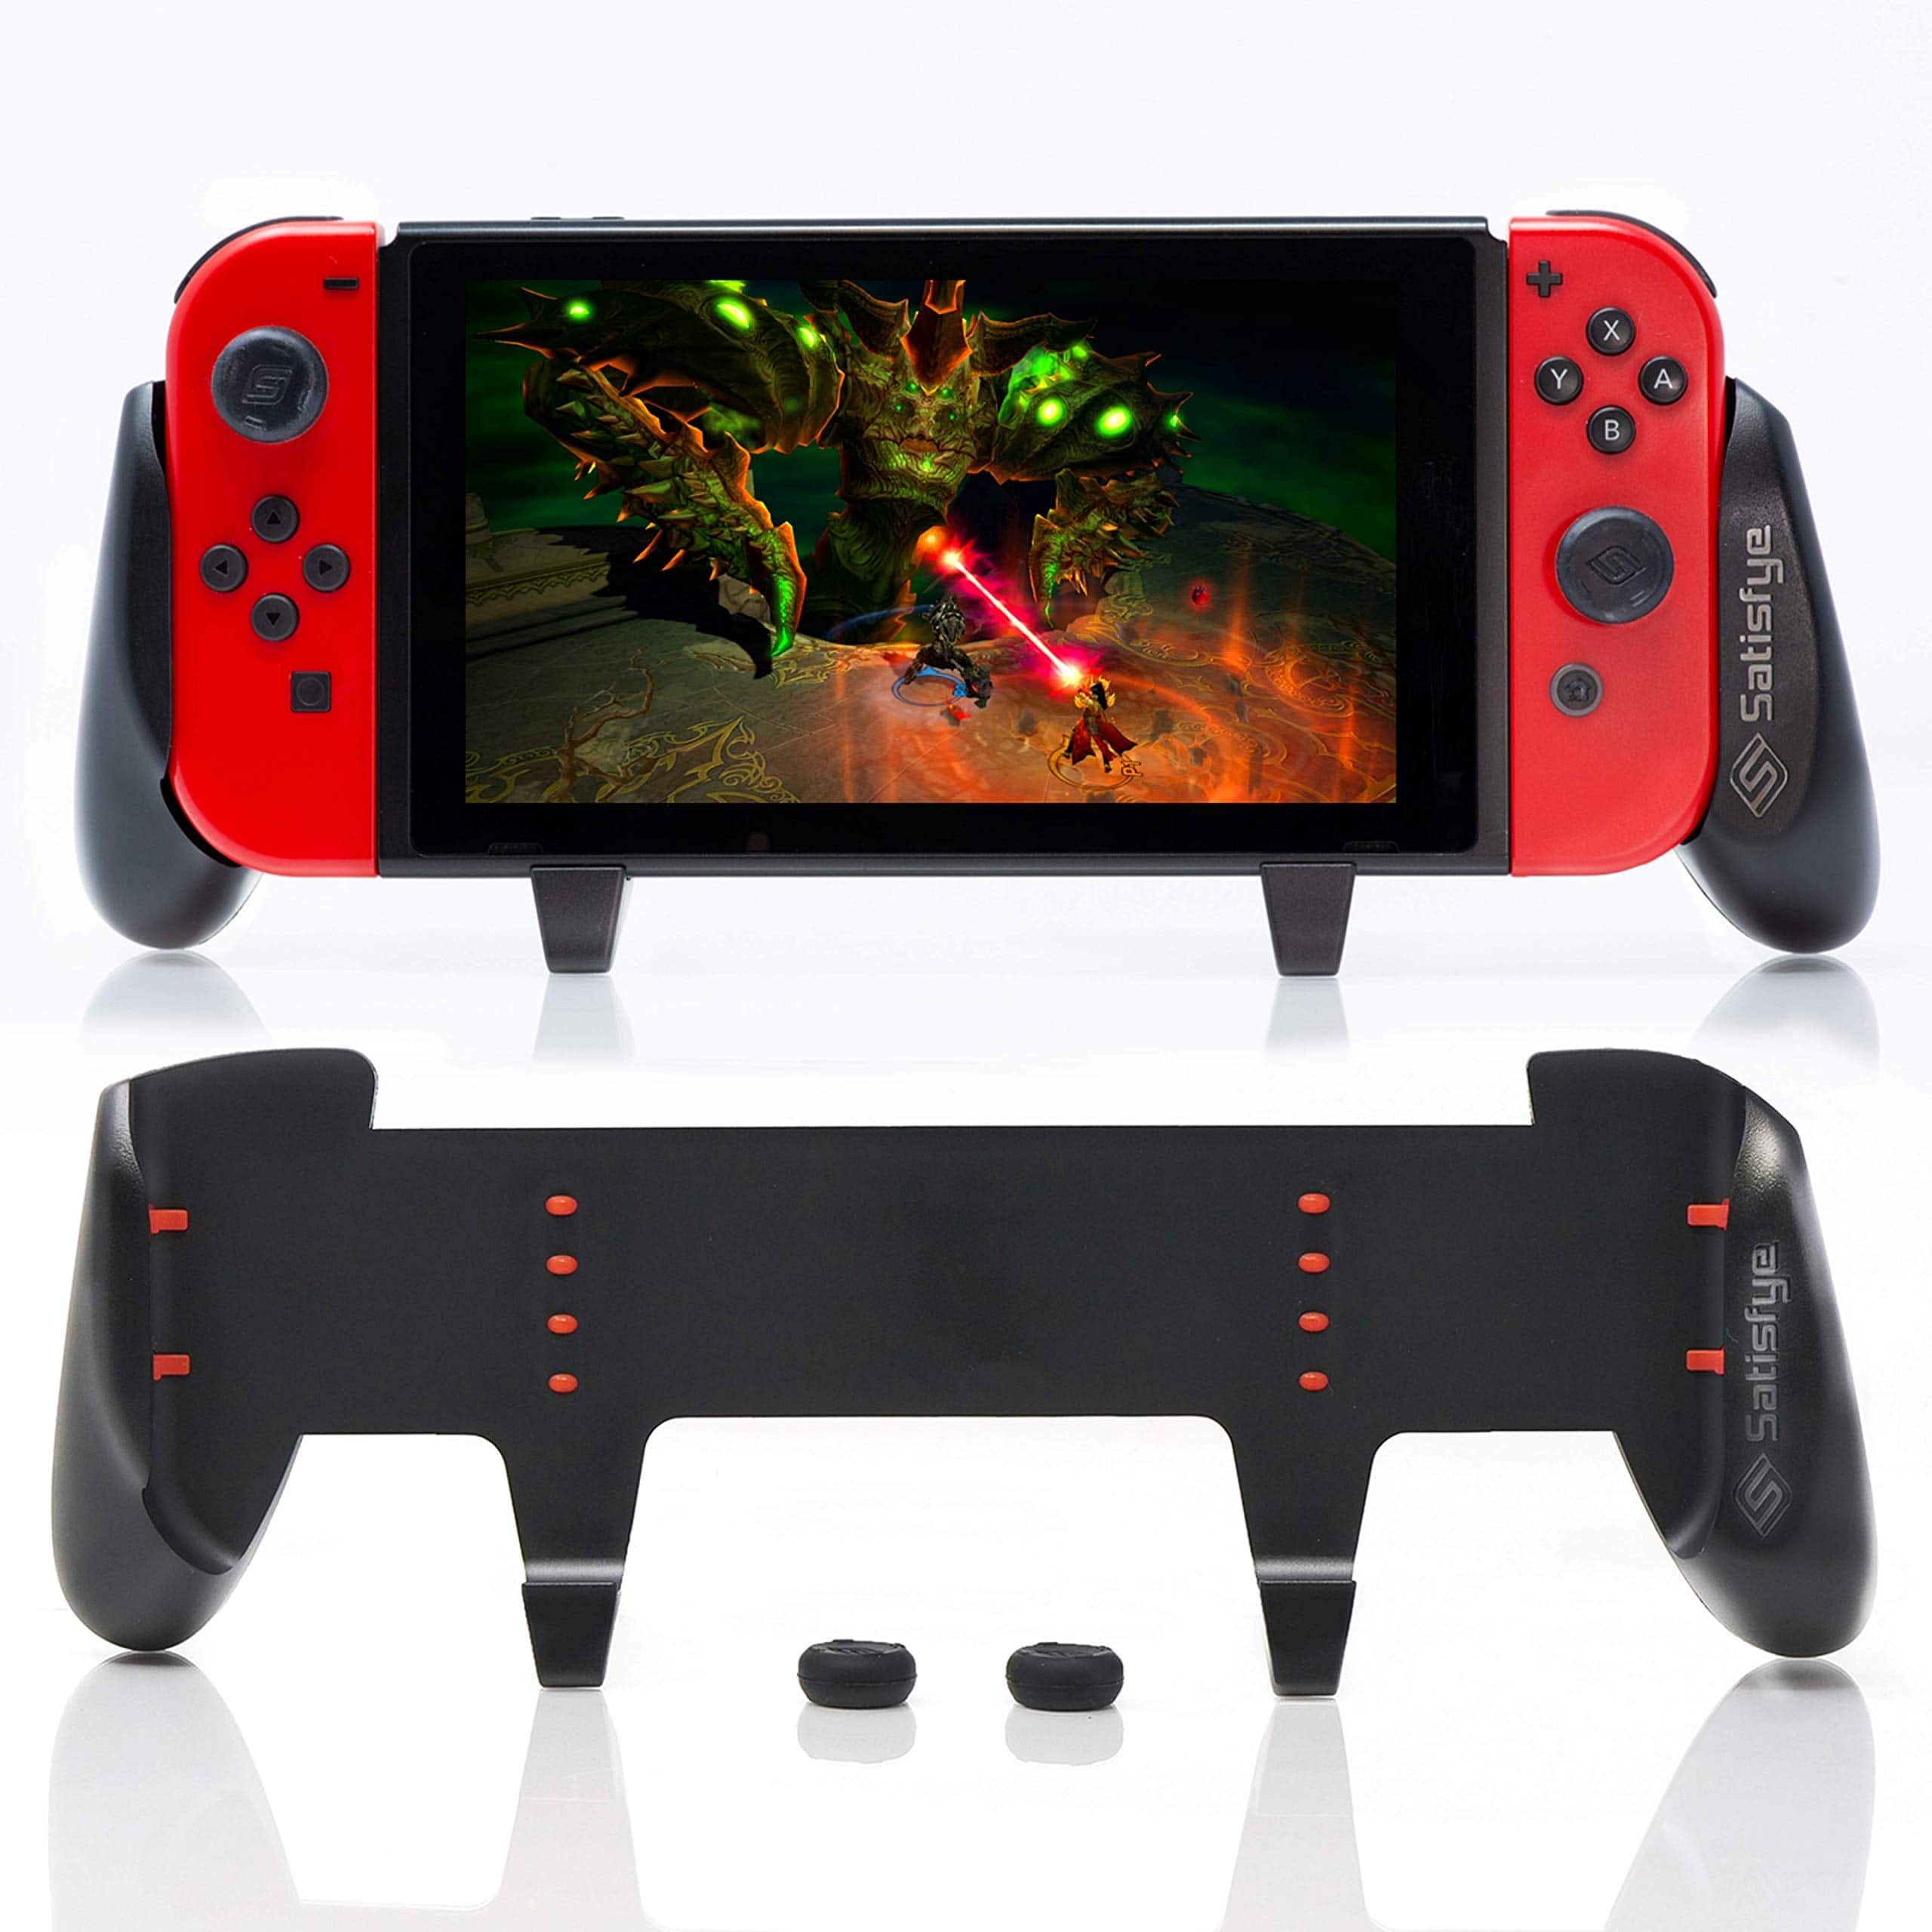 Satisfye - ZenGrip Pro, a Switch Grip Compatible with Nintendo Switch - Comfortable & Ergonomic Grip, Joy Con & Switch Control. #1 Switch Accessories Designed for Gamers. - $23